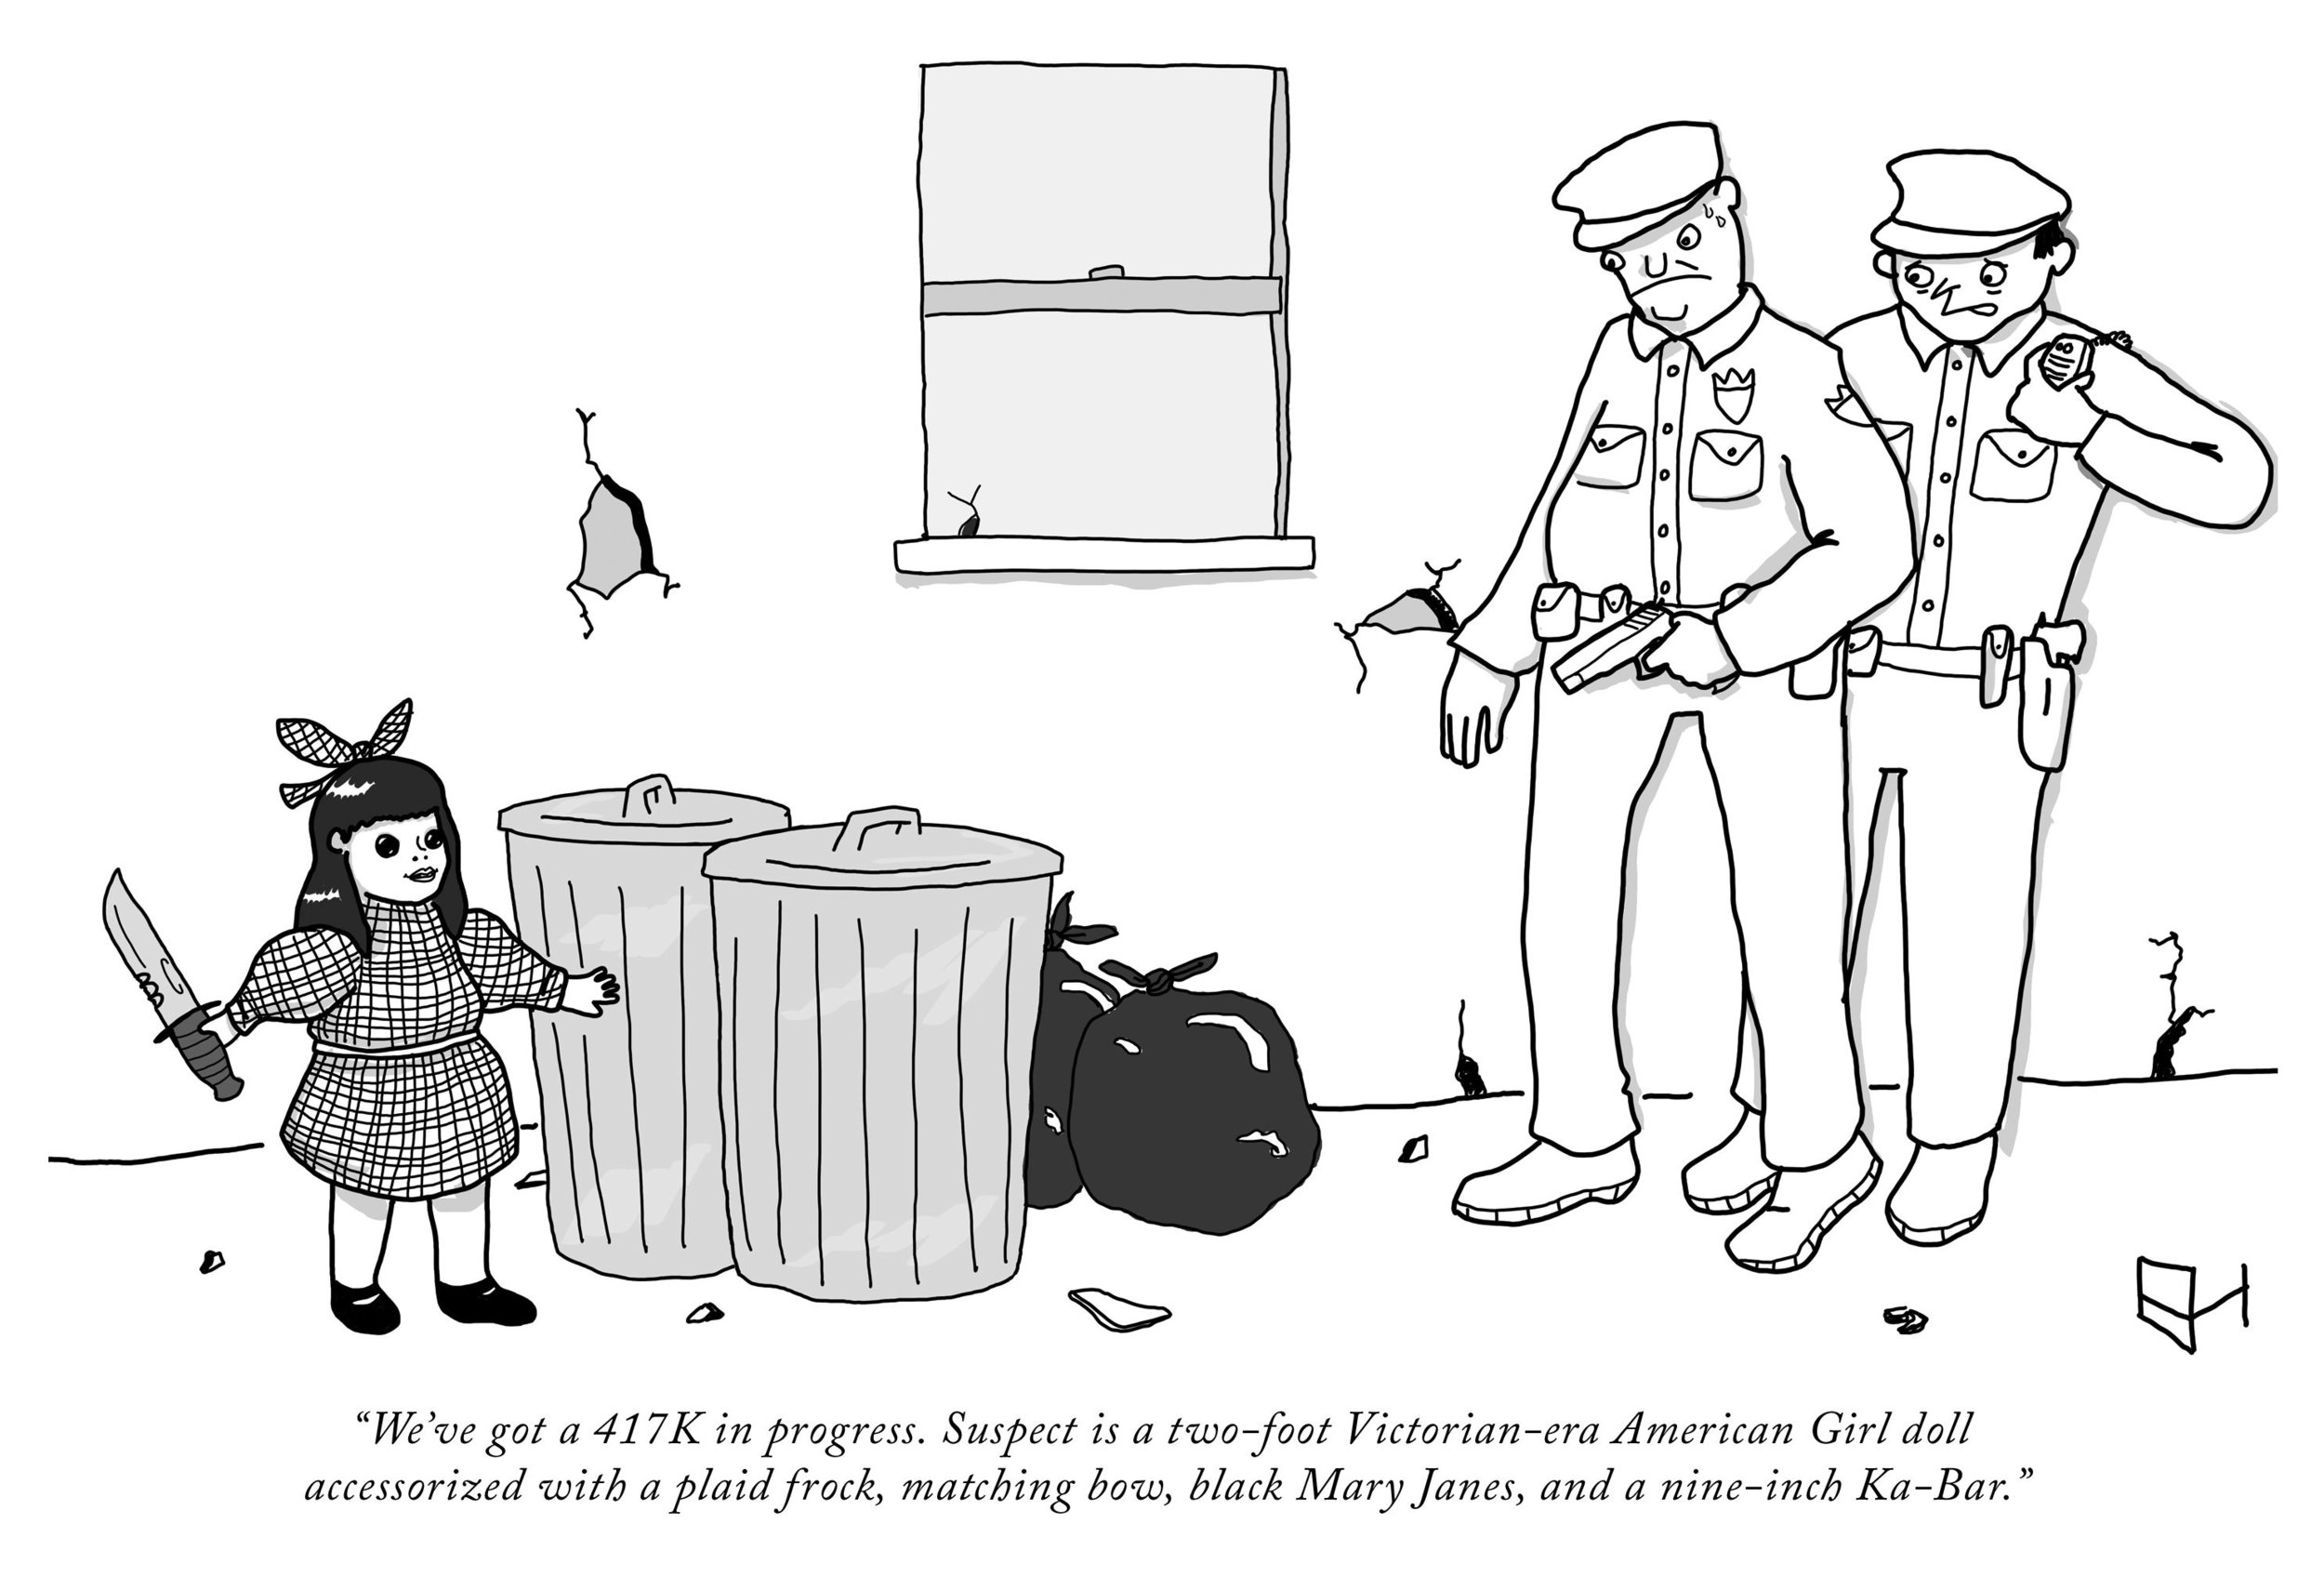 Image credit: Emma Hunsinger/The New Yorker Collection/The Cartoon Bank